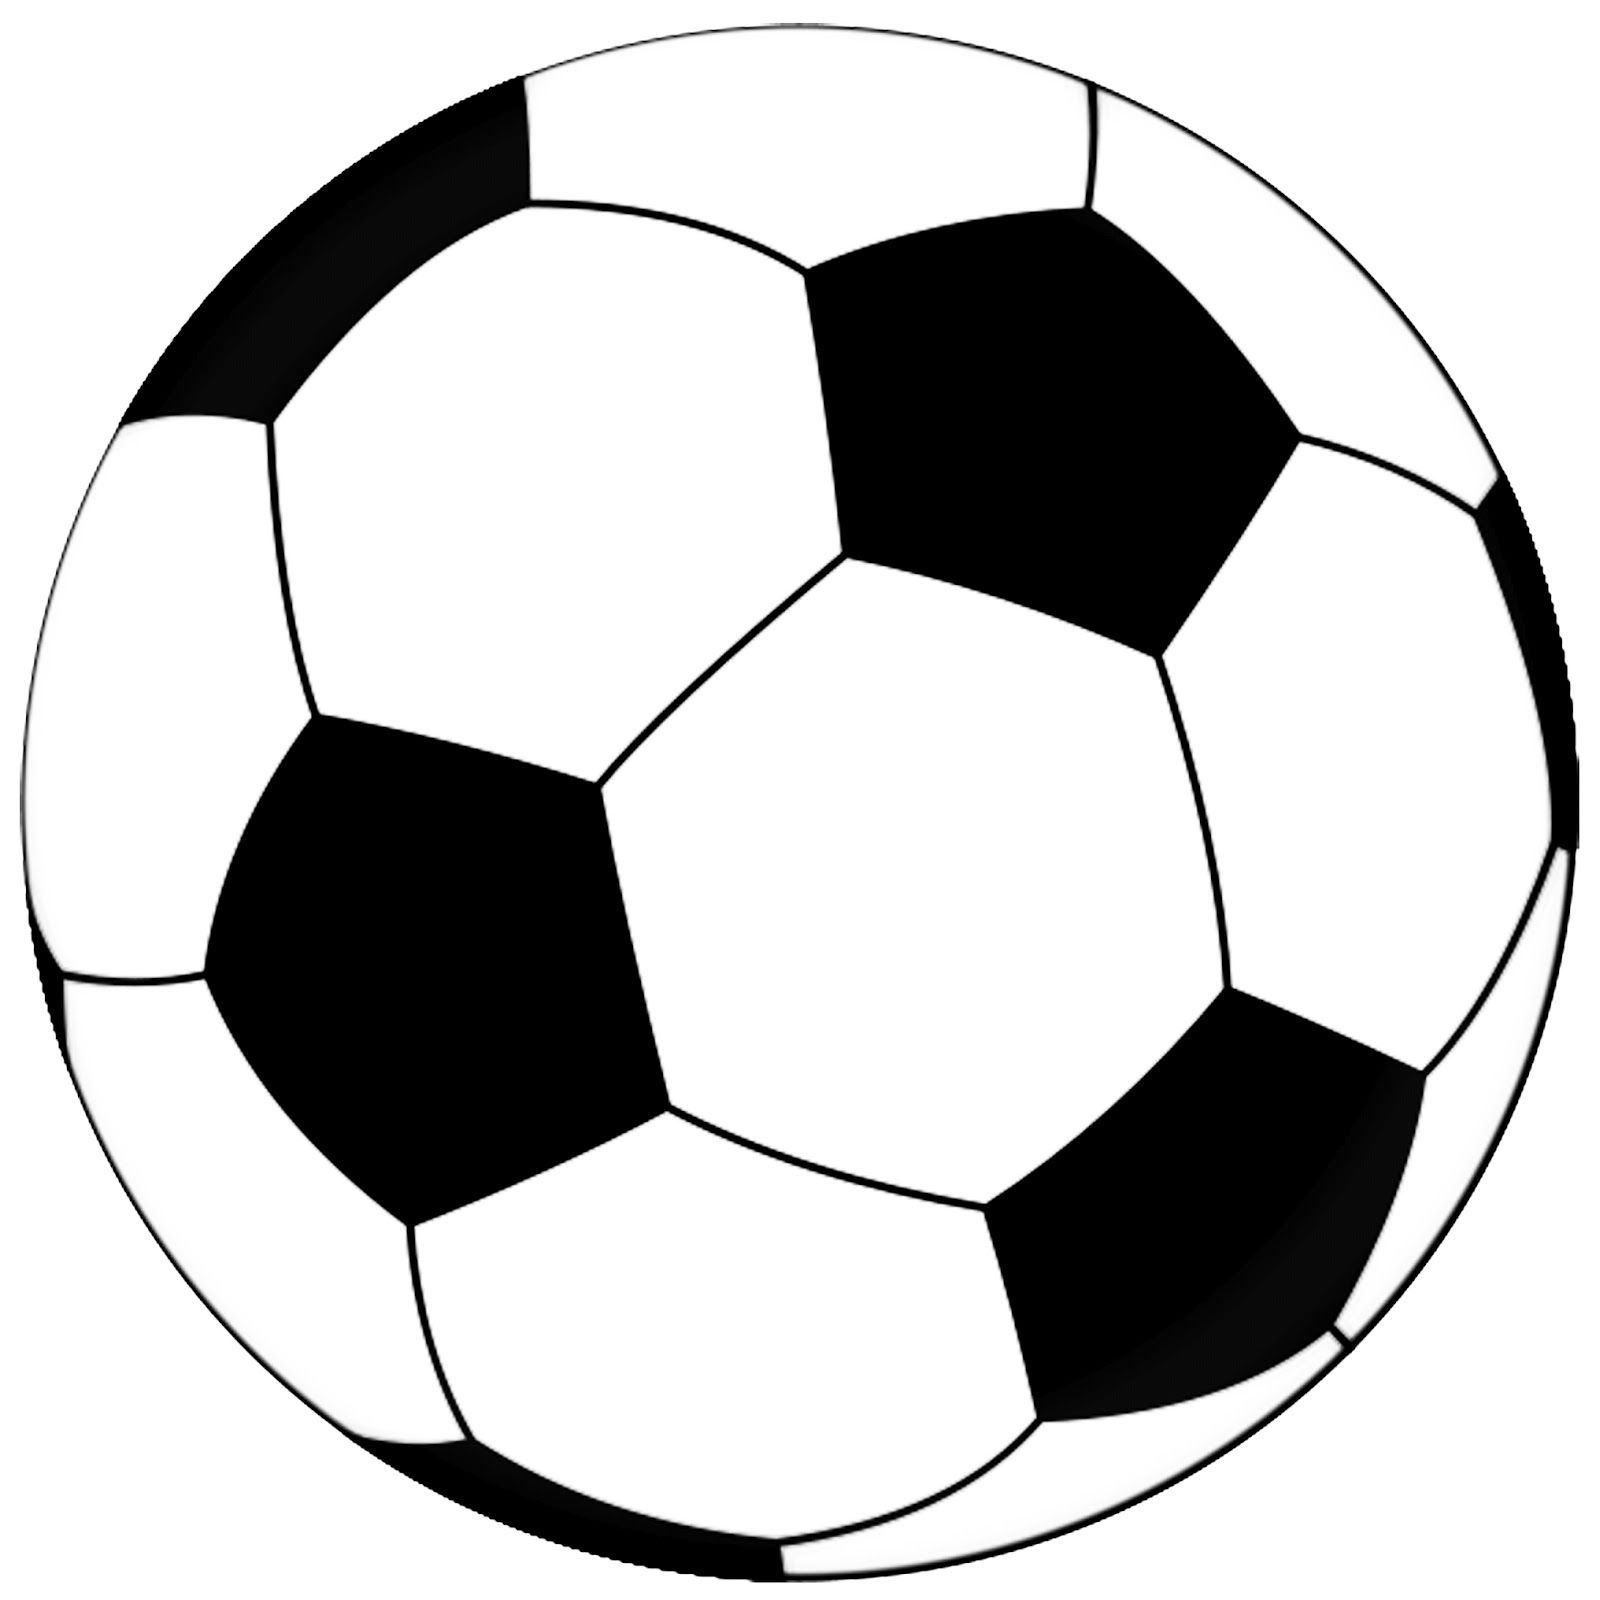 Best Photos Of Soccer Ball Template Soccer Ball Drawing Soccer Clipart Best Clipart Best Kids Art Projects Soccer Ball Ball Drawing